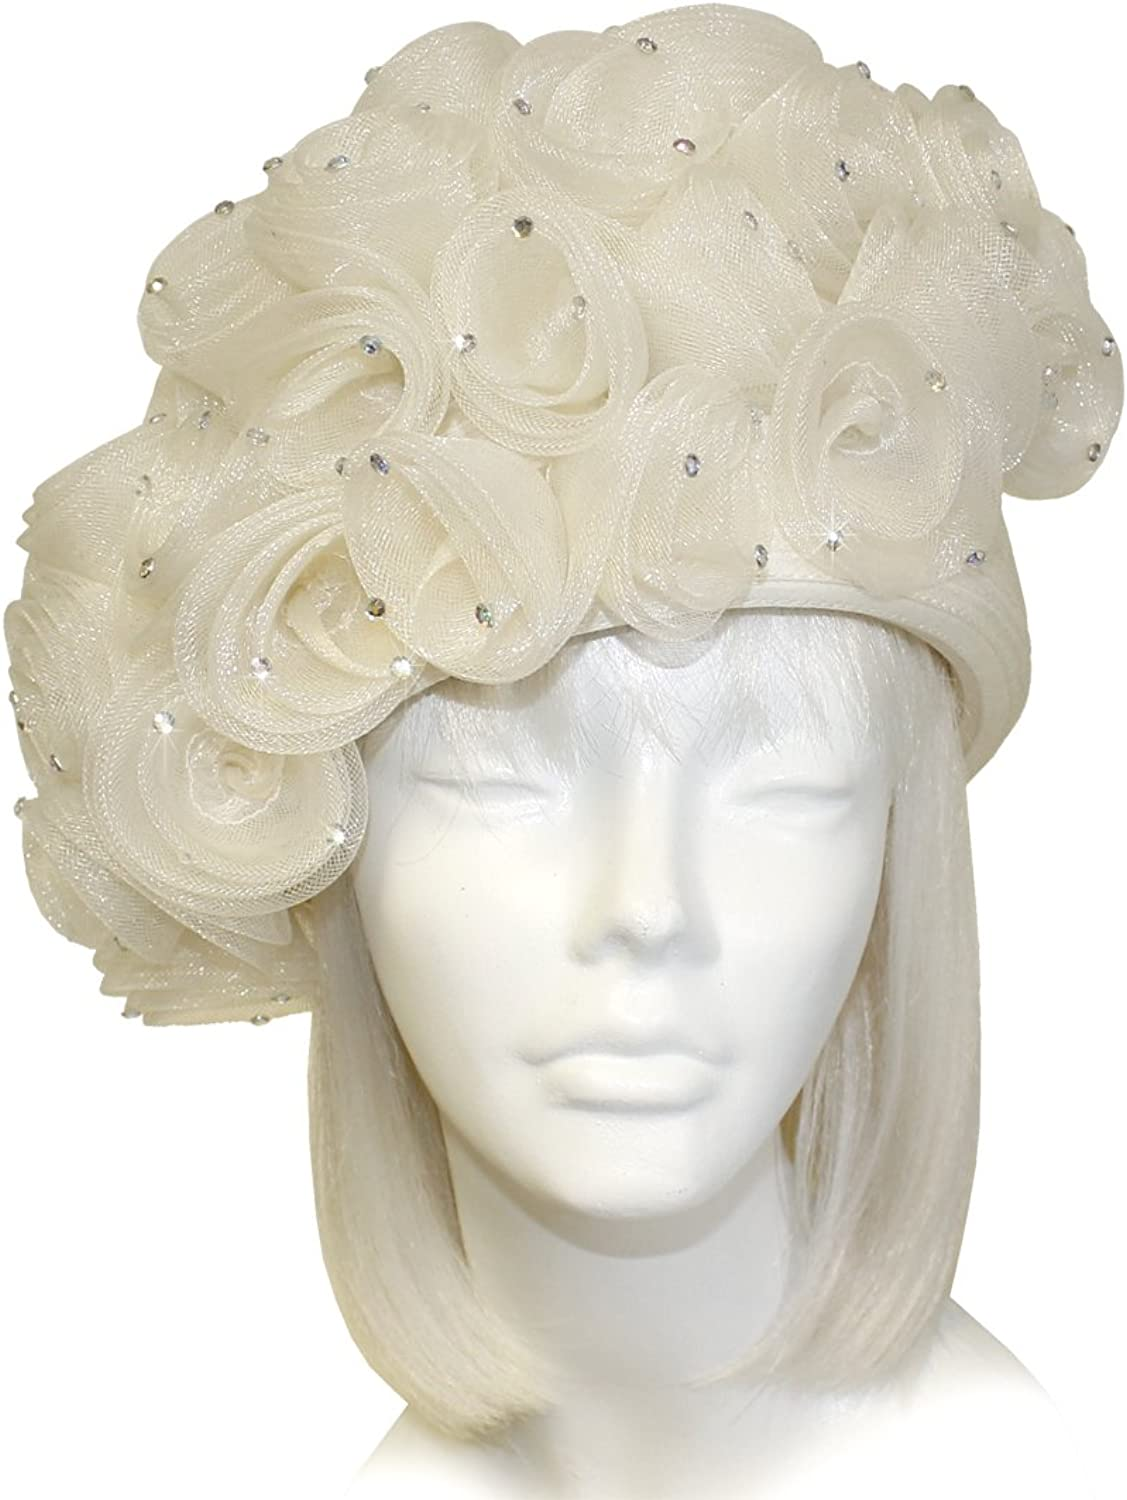 Mr. Song Millinery CRIN Hair Roesette Cloche Hat  Ivory Crème Q249